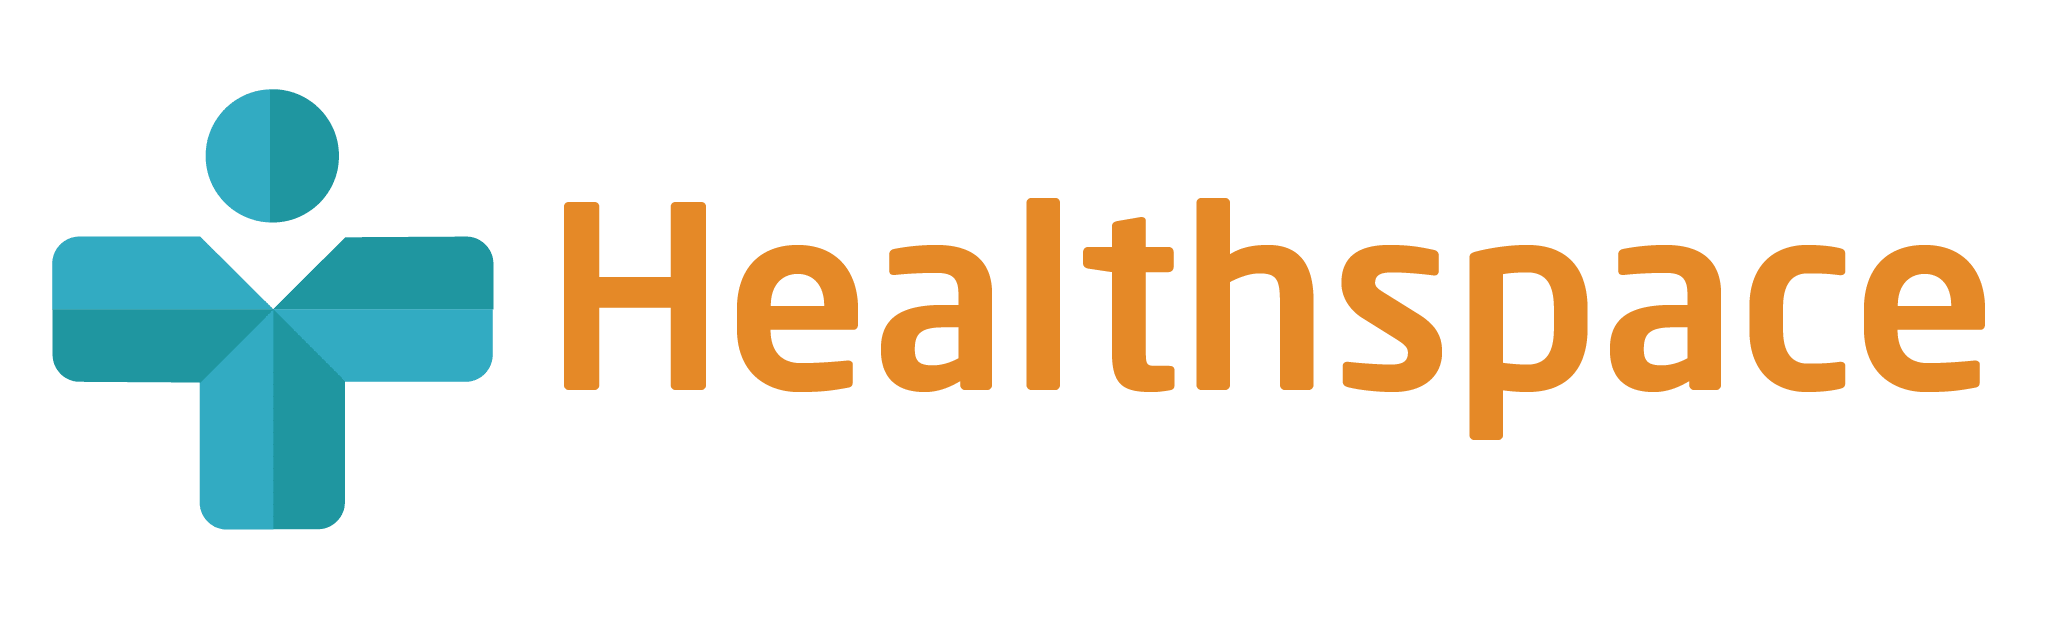 Healthspace provides you access to the best health services